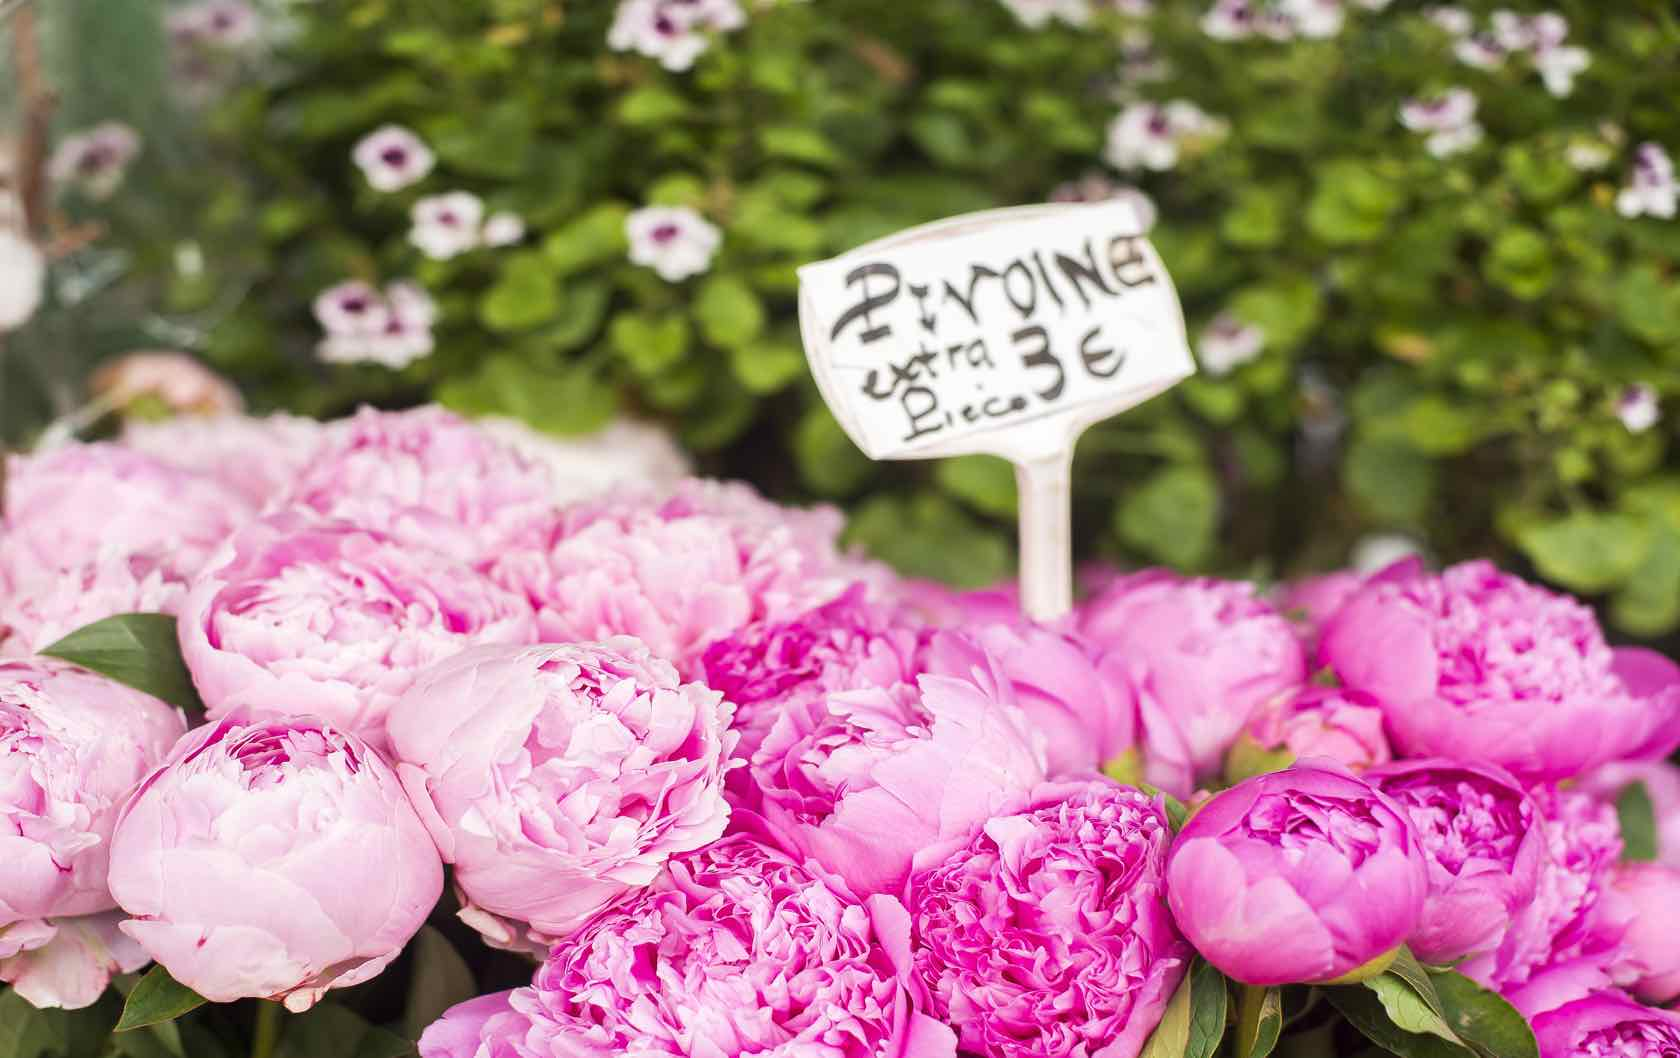 Blooming Paris: Where to See Spring Flowers in Paris